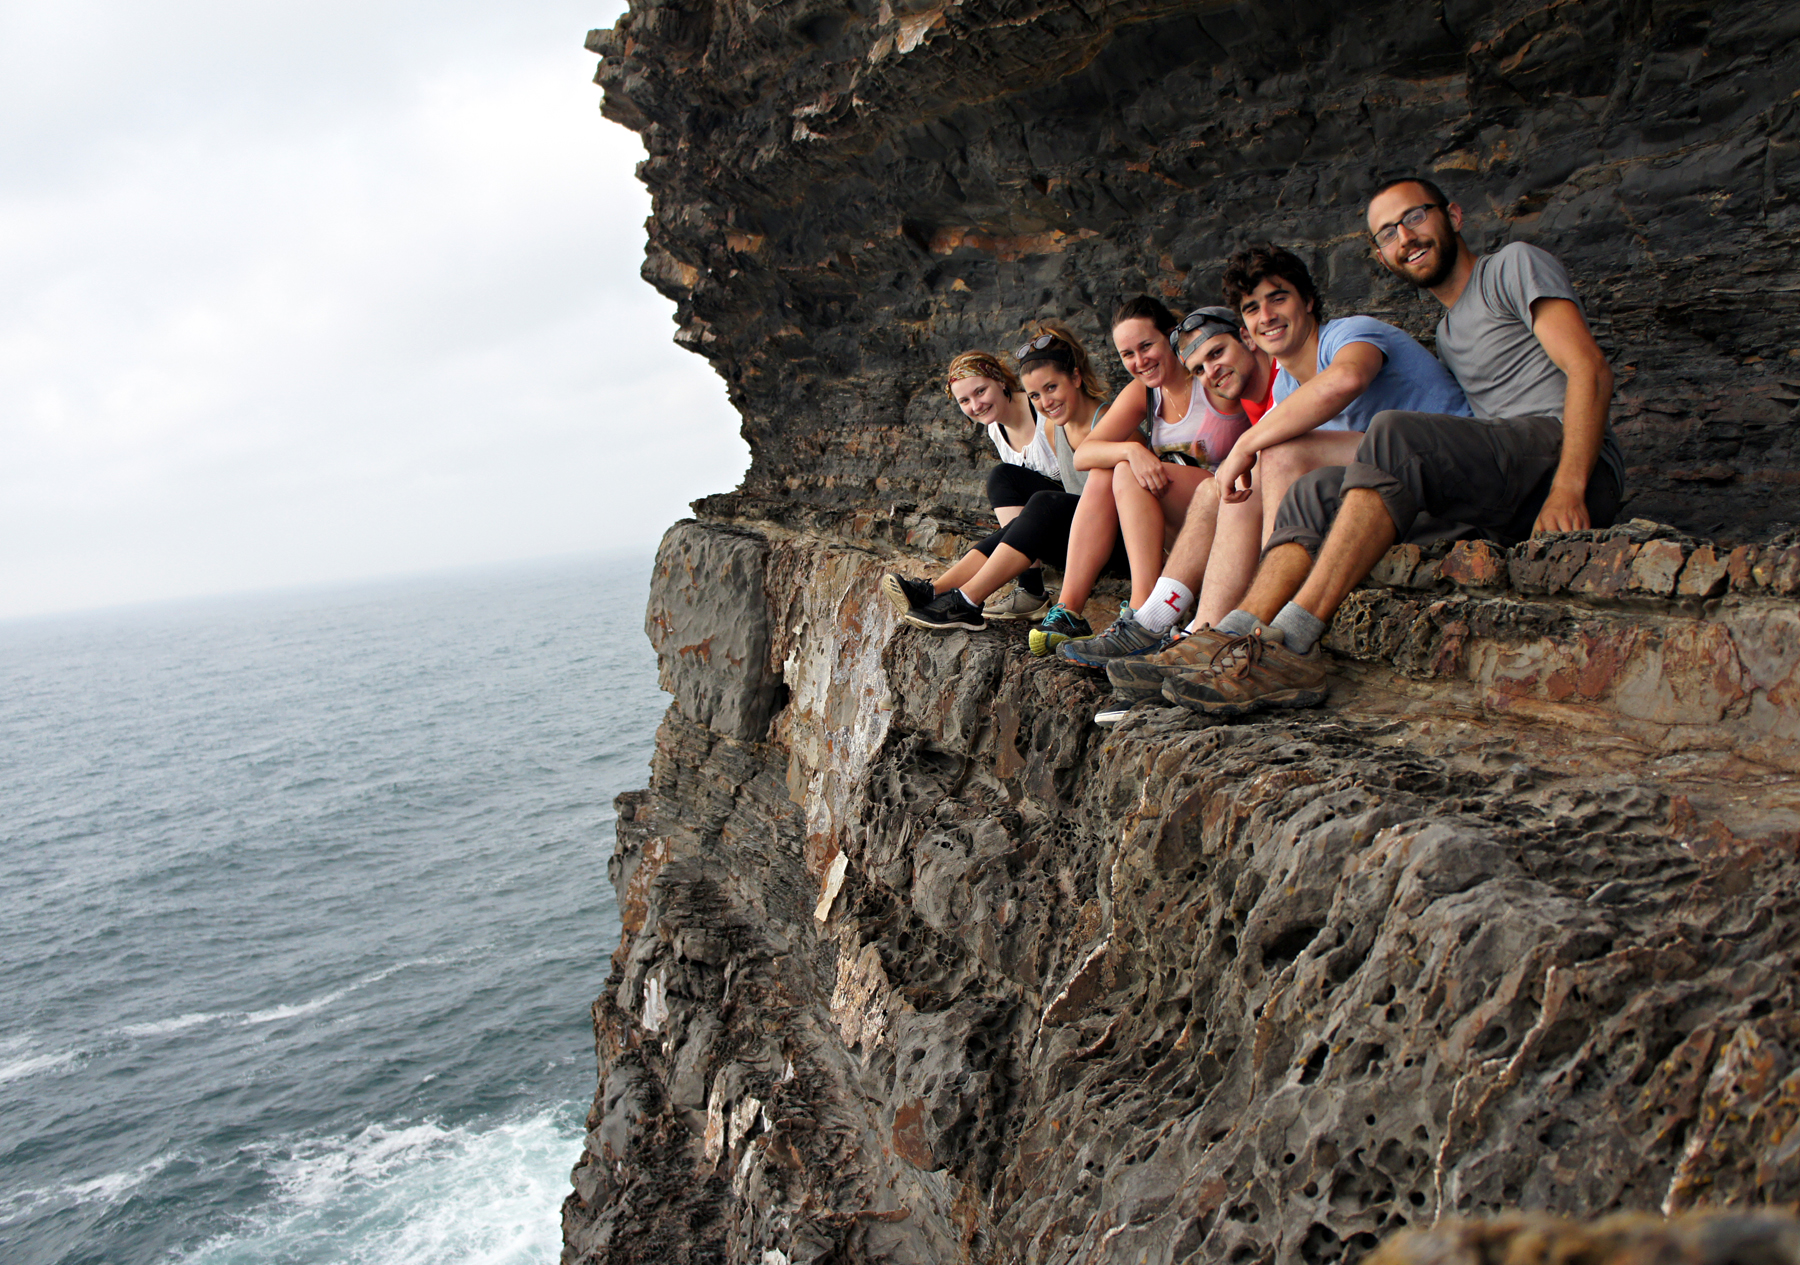 T.J. leads a group through the cliffs of Lagos, Portugal with West Coast Adventure Co.